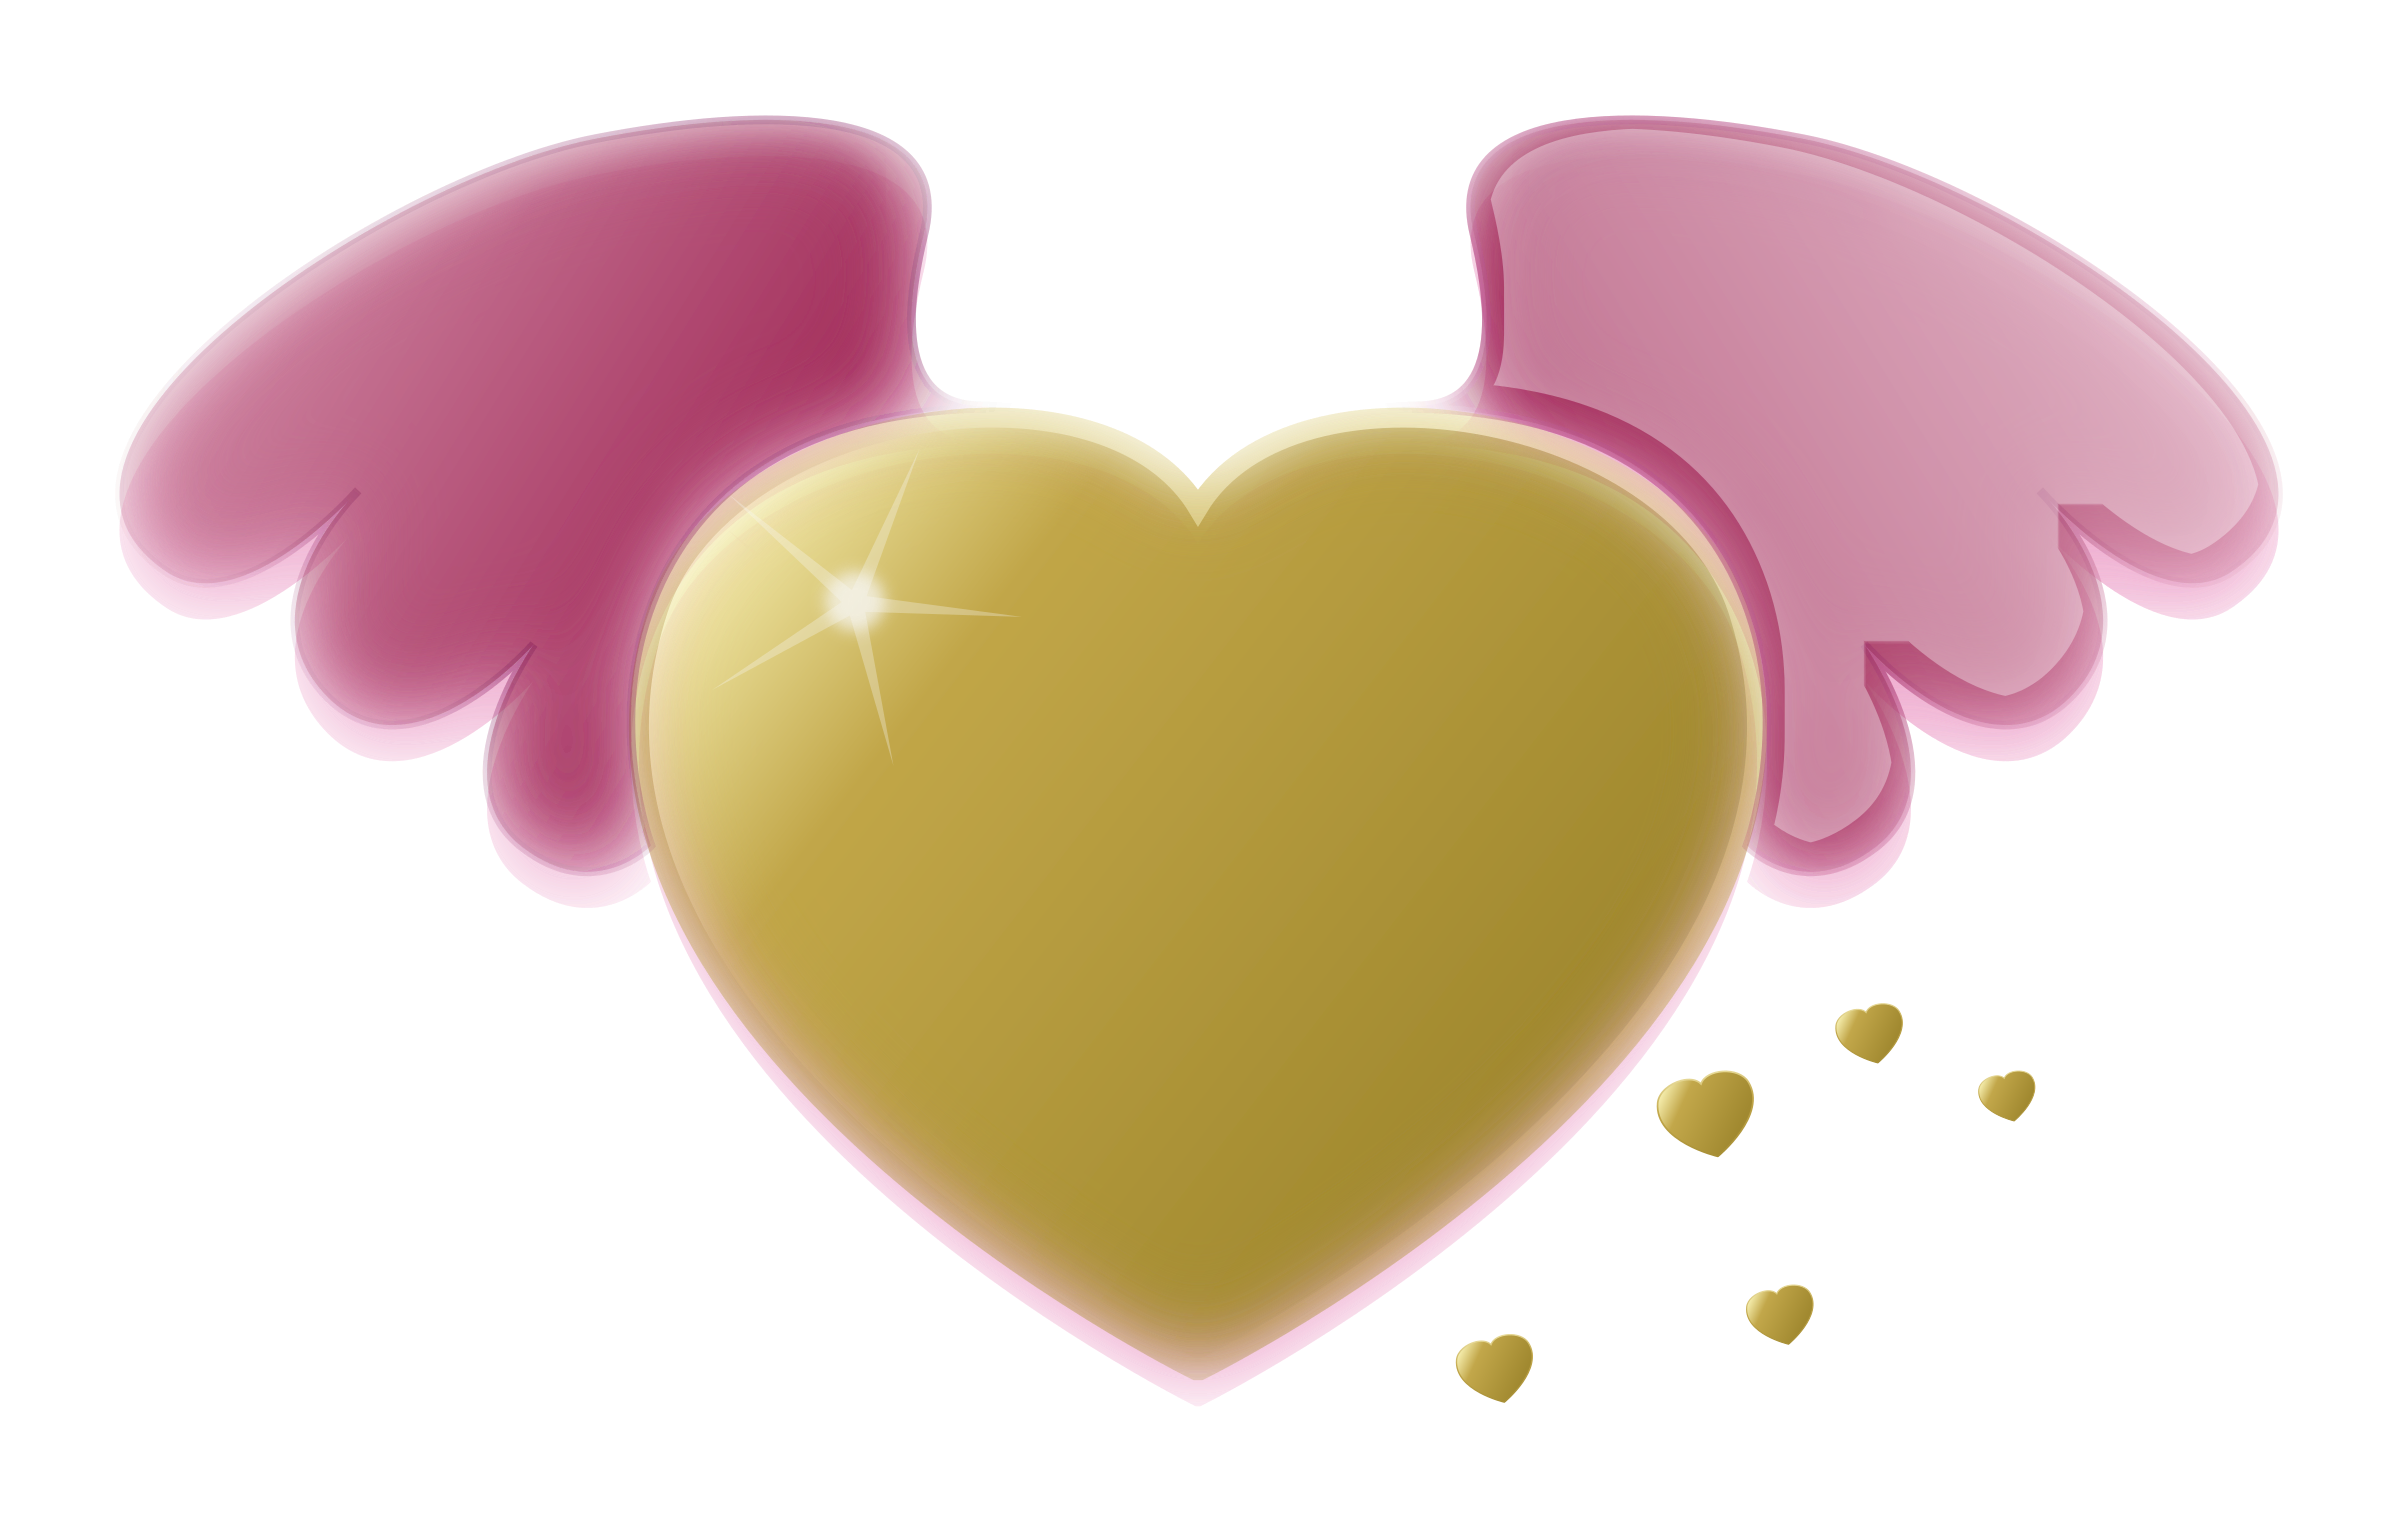 Wings clipart winged heart Wings Heart Gold Pink Clipart